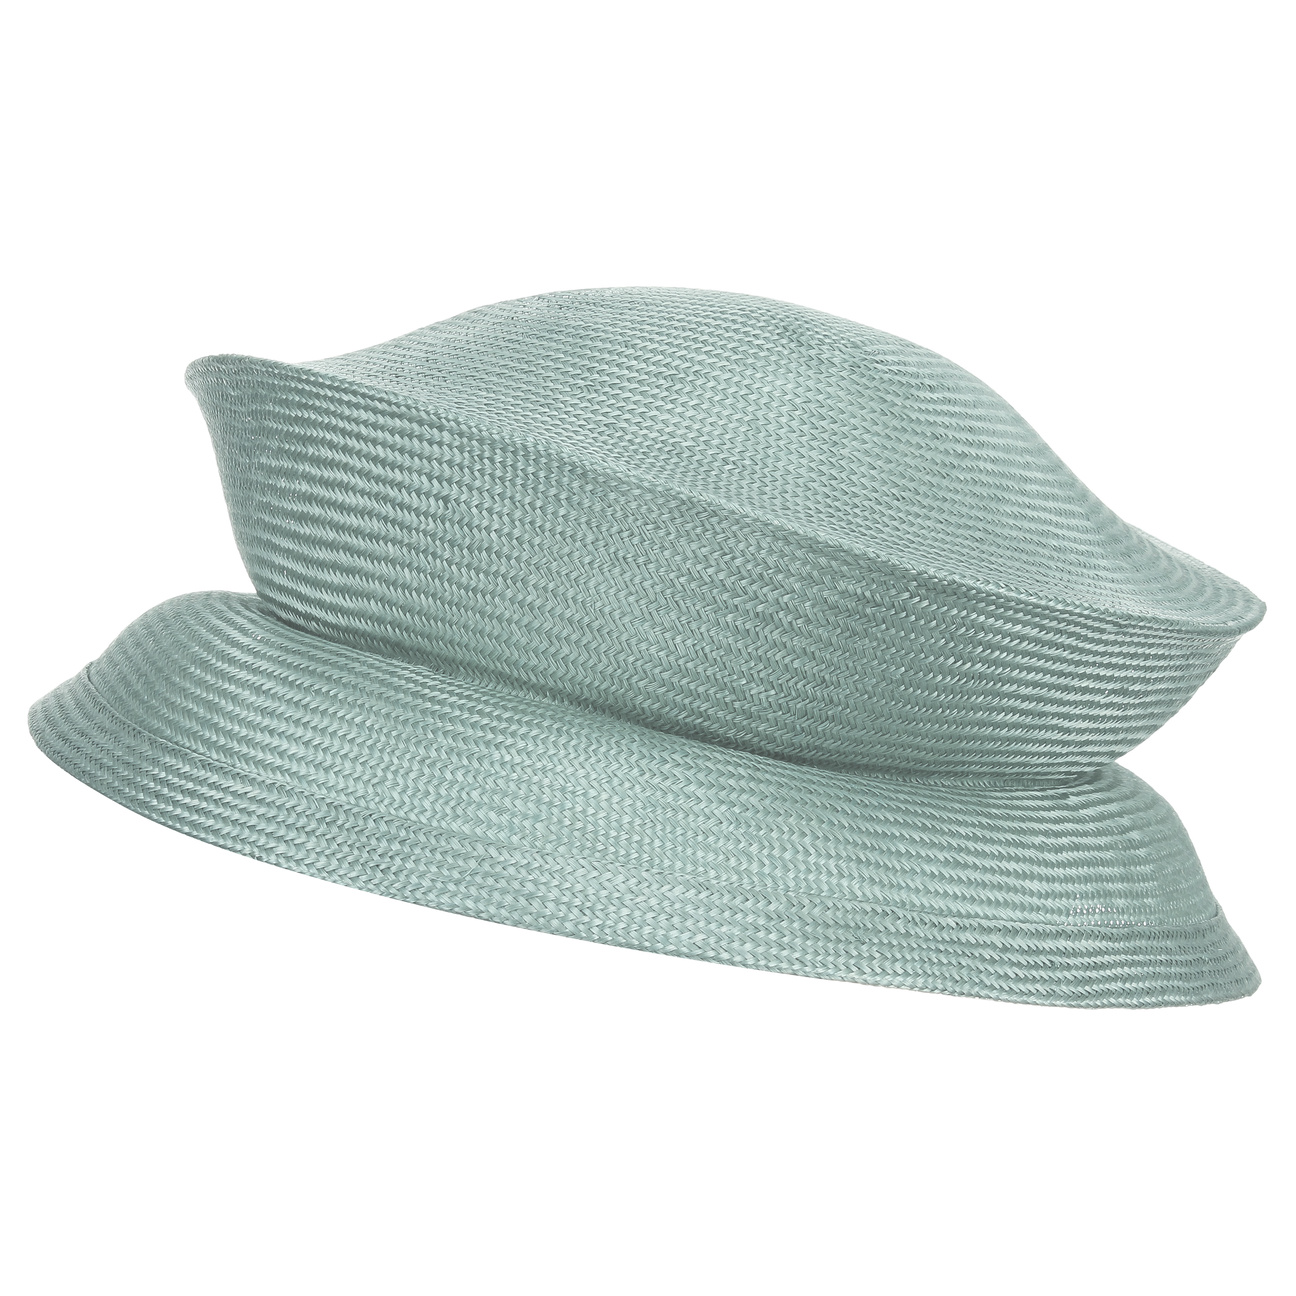 Sisal Collapsible Hat by Seeberger  sombrero de verano